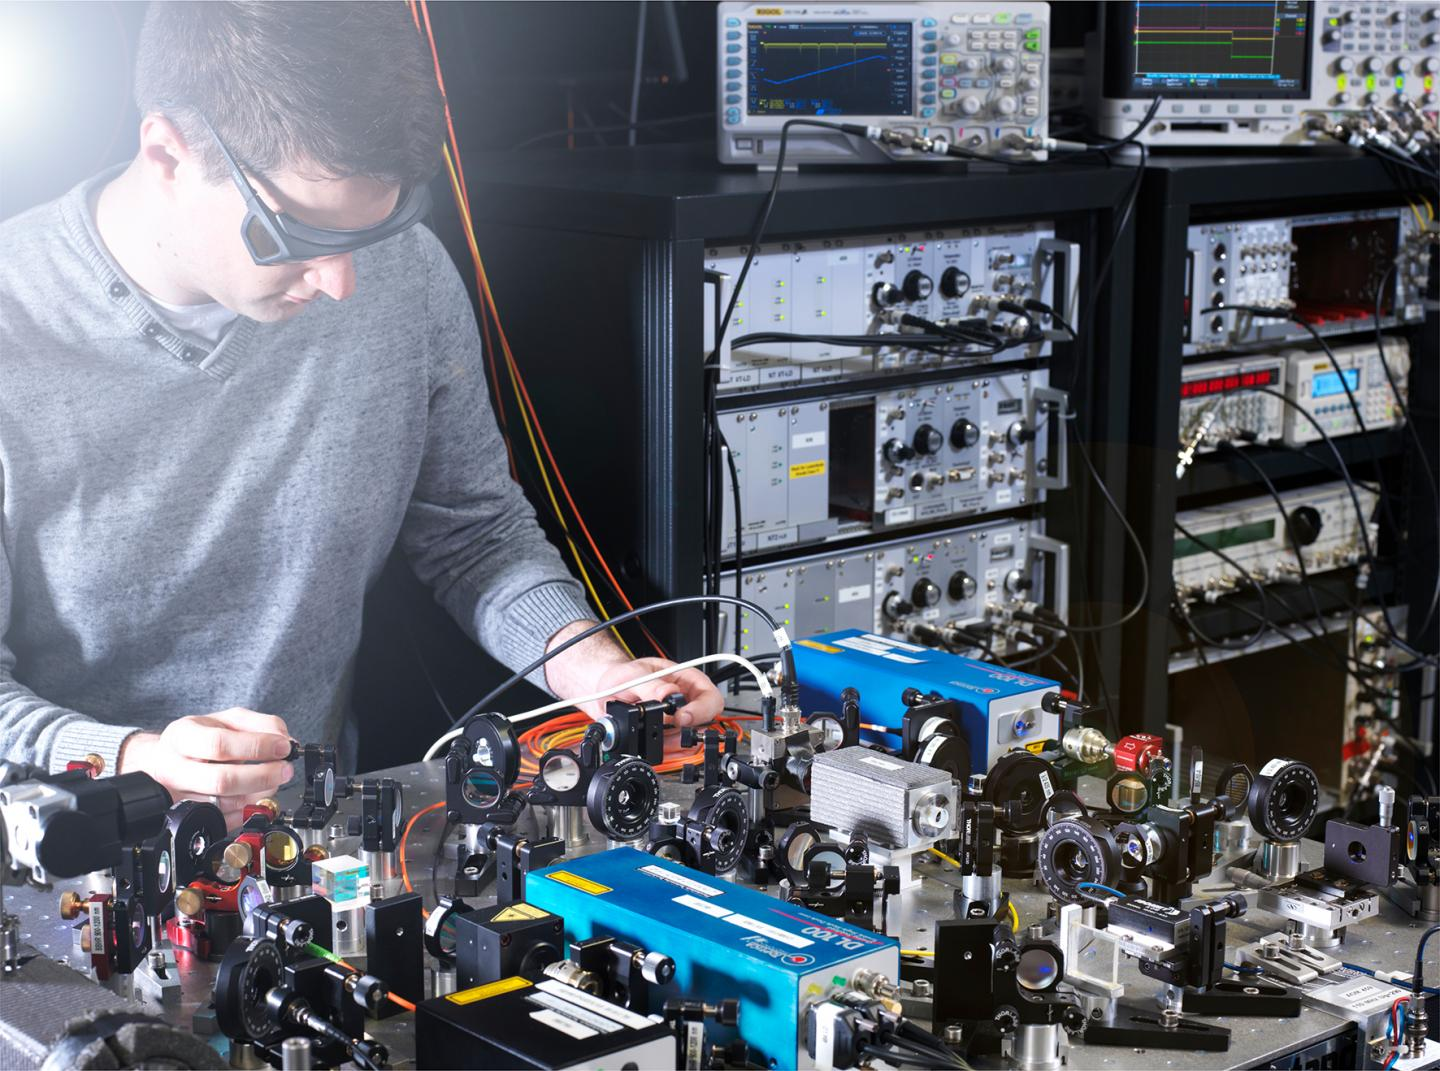 PTB scientist Johannes Thielking with the laser setup for measurements of the thorium-229 nuclear properties